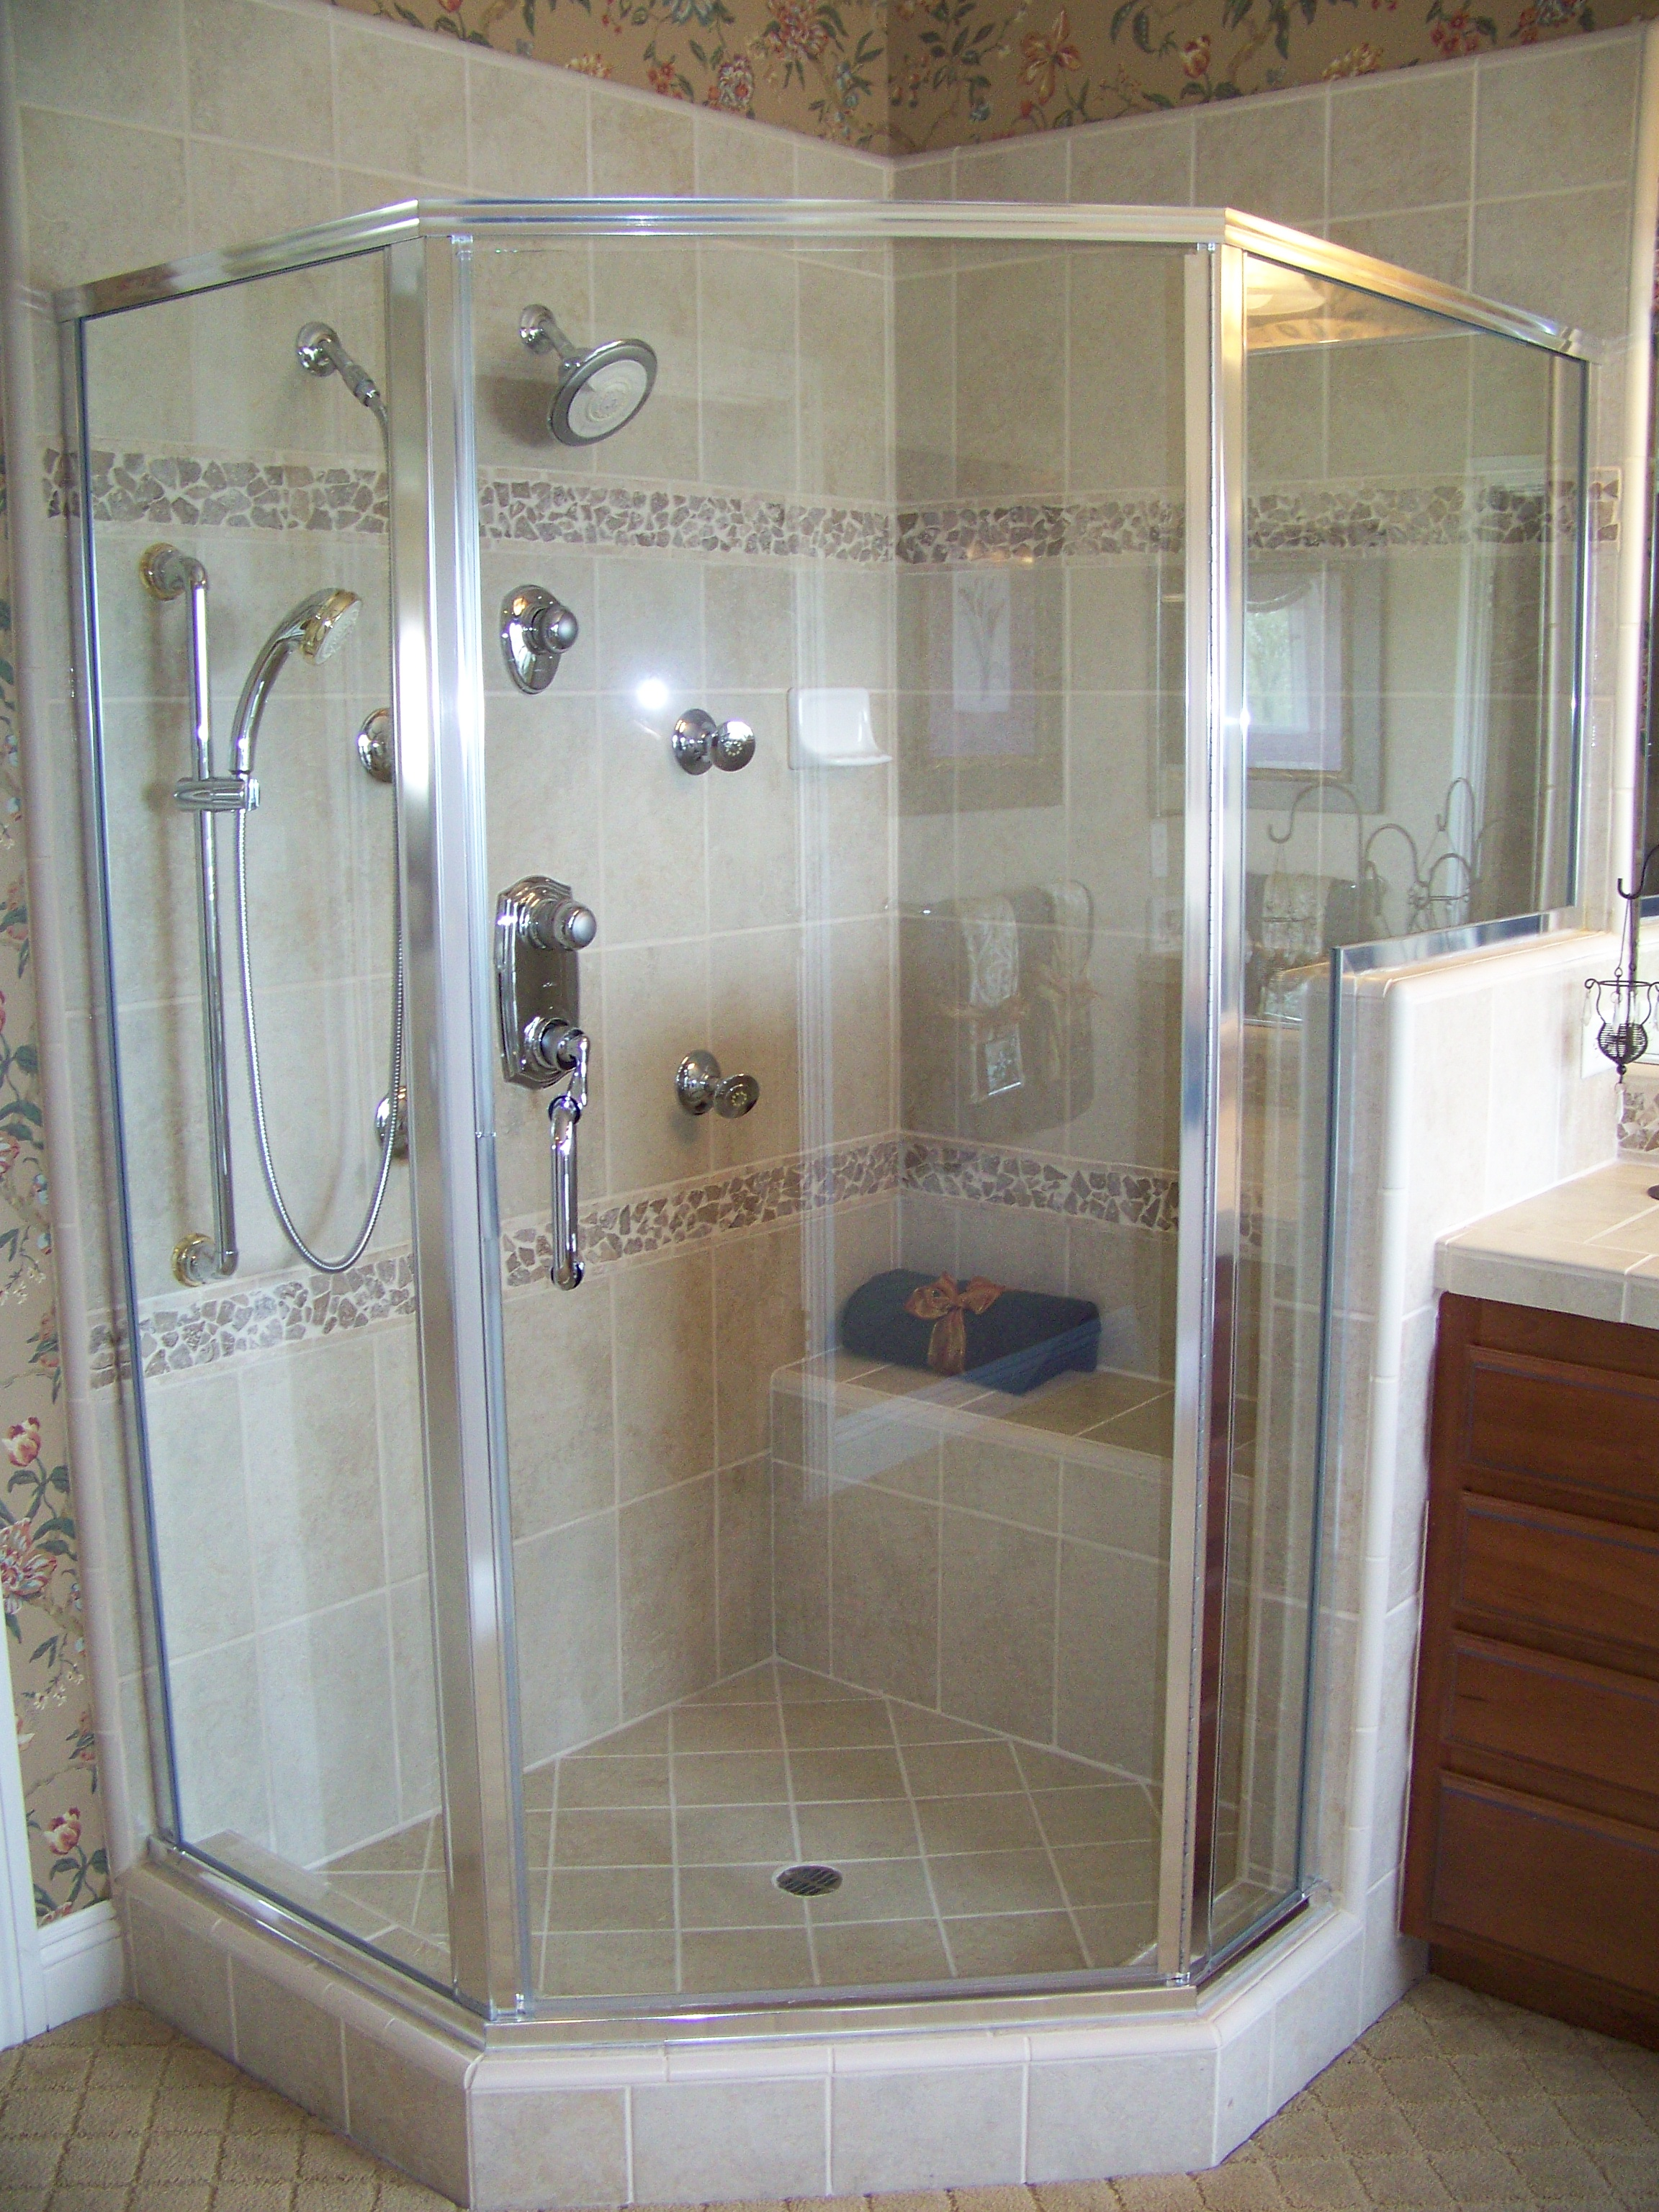 Atlas Shower Door Co 4337 Astoria St Sacramento Ca 95838 Yp Com